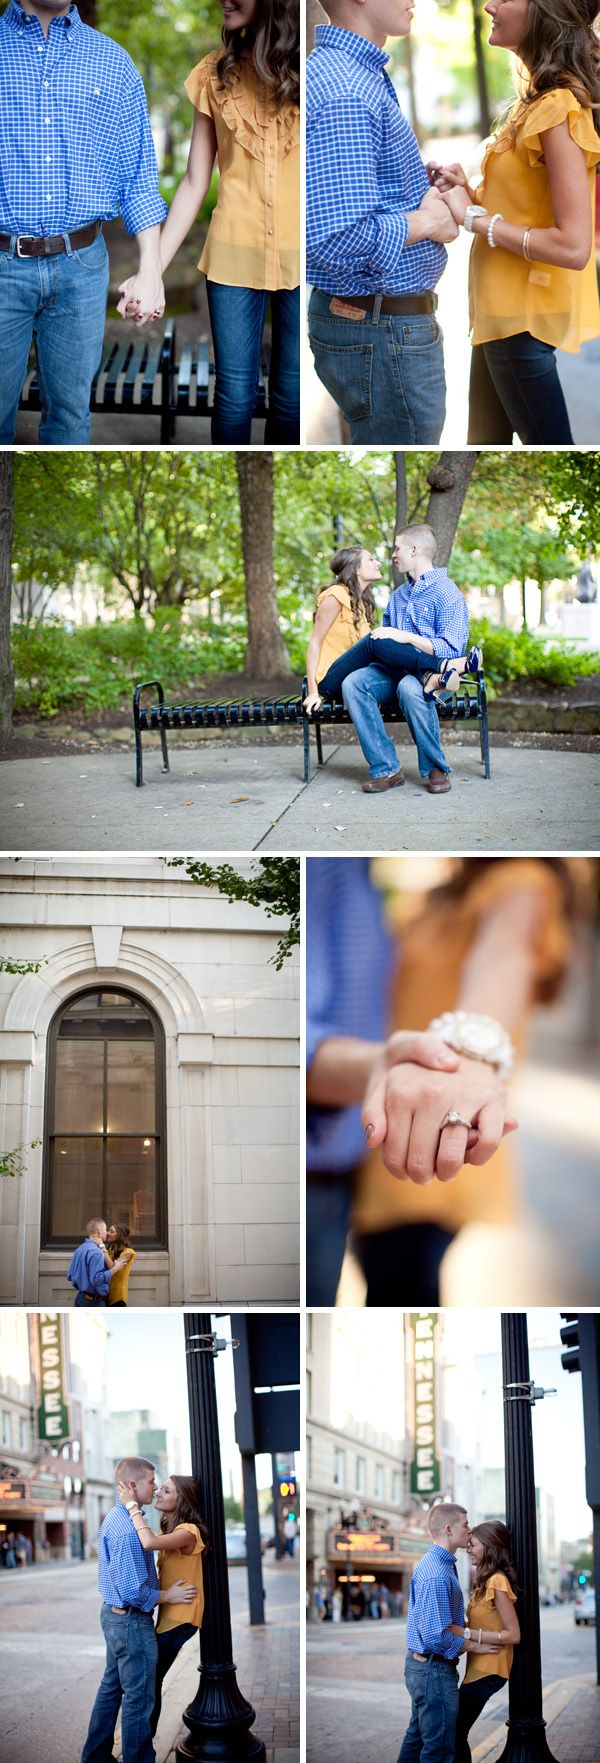 engagement pictures | Shannon Kelley #urban photoshoot